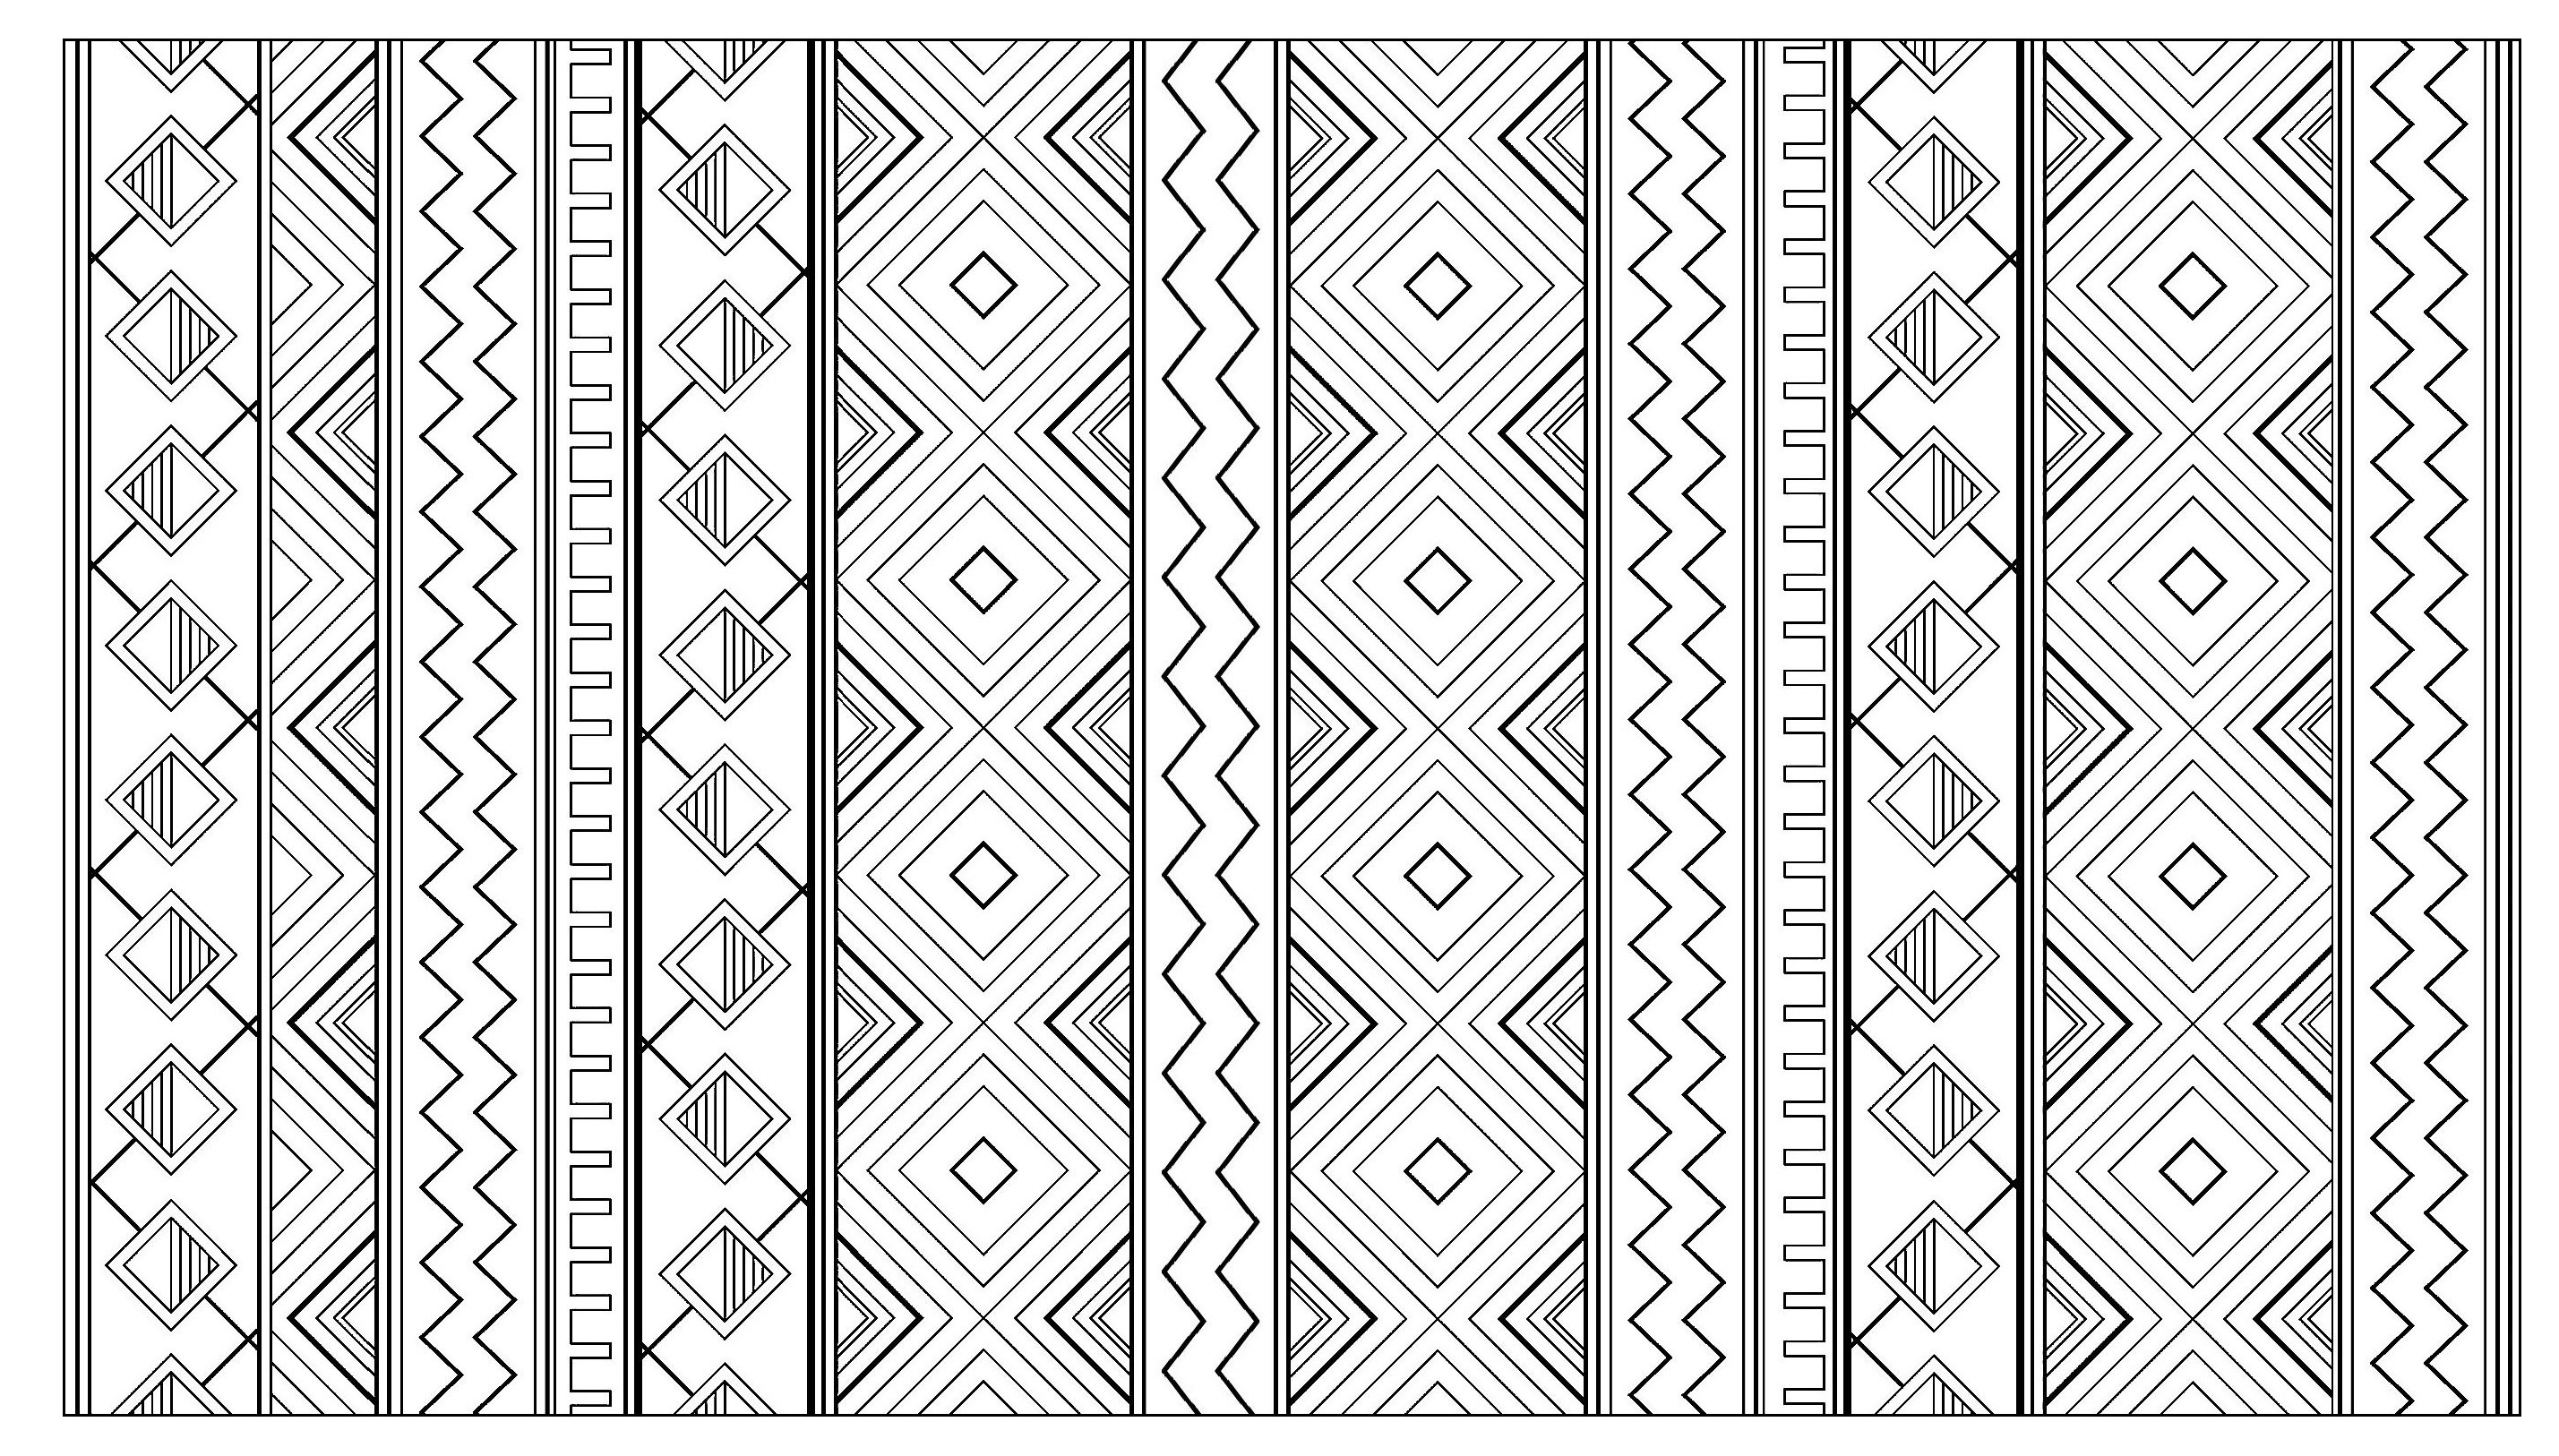 Inca aztec mayan pattern - Mayans & Incas Adult Coloring Pages